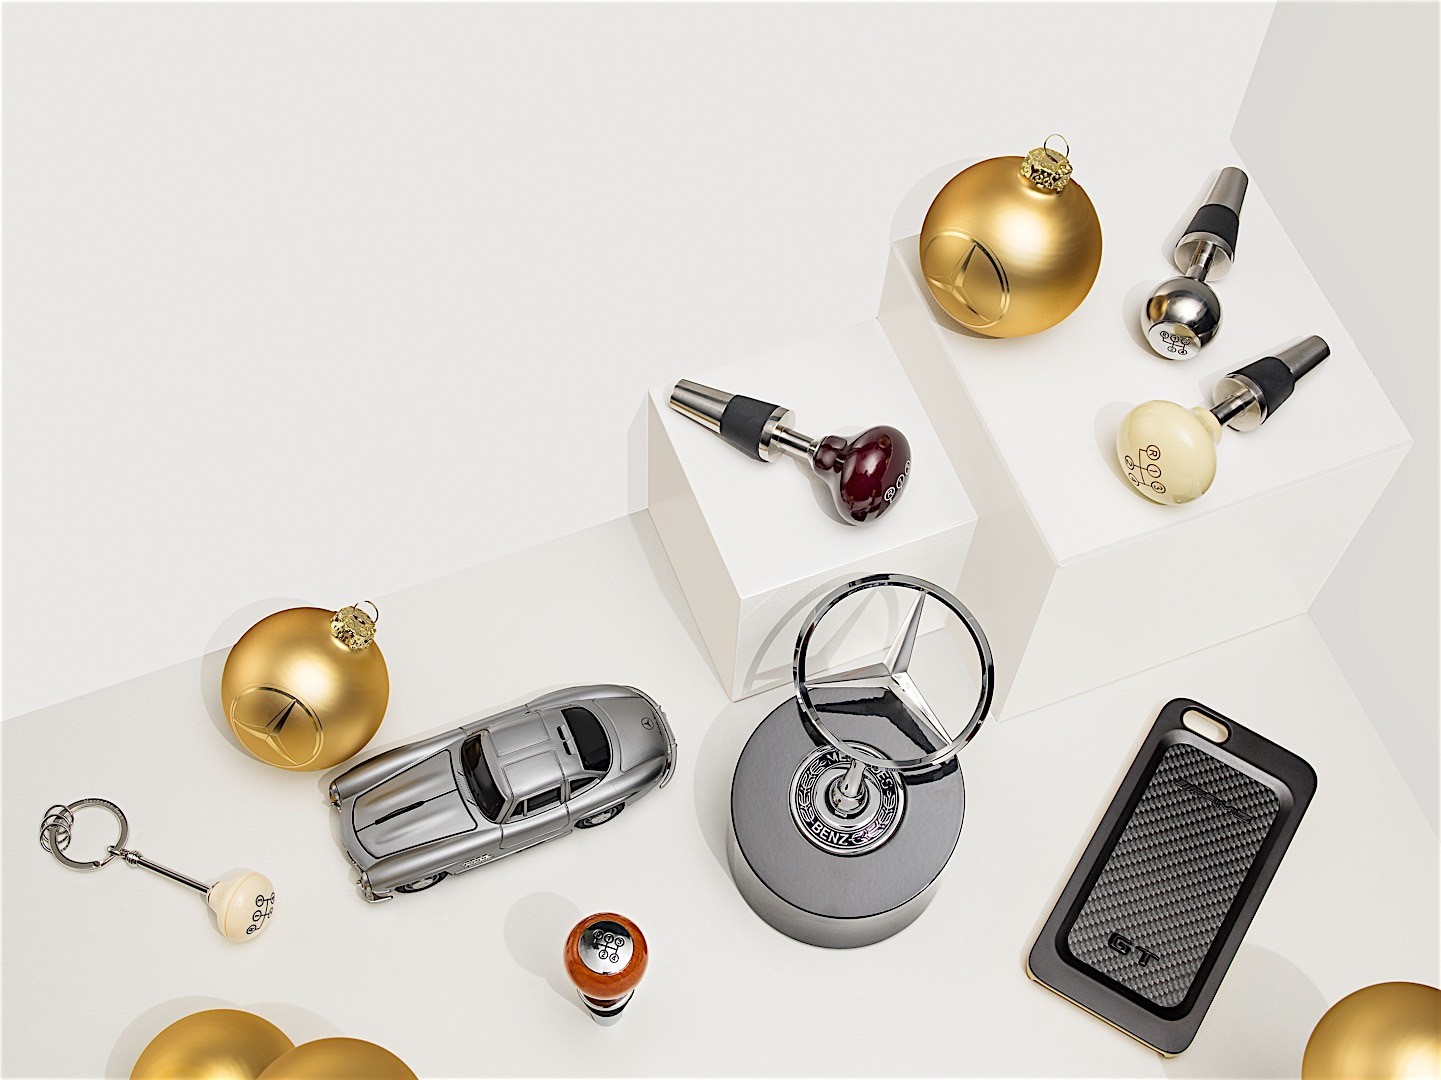 mercedes-benz tempts santa with a selection of gift ideas